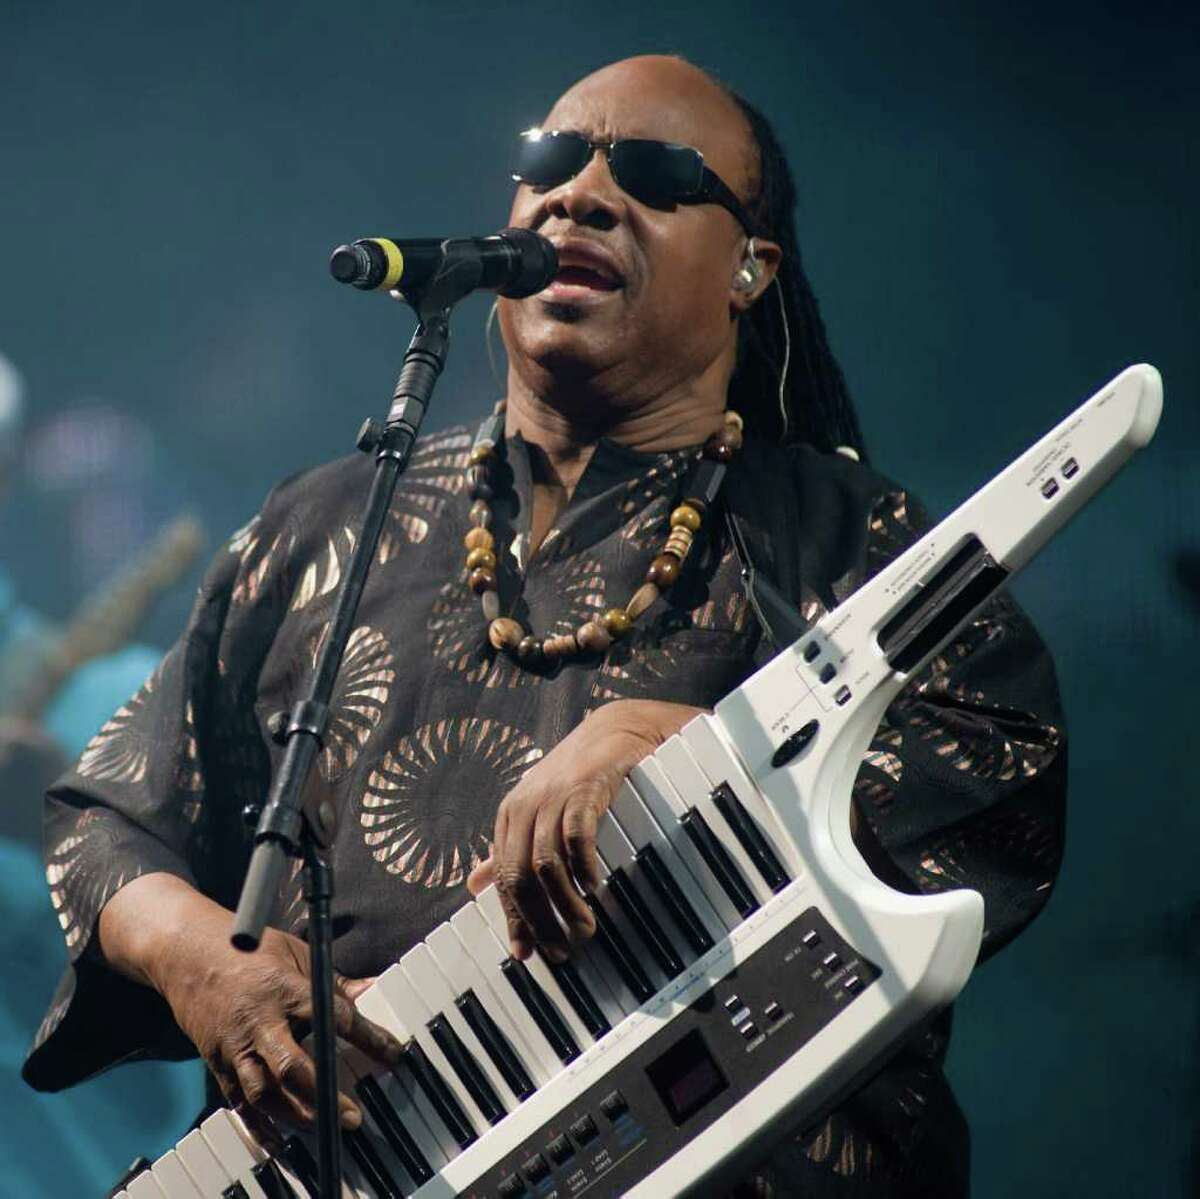 GLASTONBURY, ENGLAND - JUNE 27: Stevie Wonder performs on The Pyramid Stage during Day 4 of the Glastonbury Festival on June 27, 2010 in Glastonbury, England. This year sees the 40th anniversary of the festival which was started by a dairy farmer, Michael Evis in 1970 and has grown into the largest music festival in Europe. (Photo by Ian Gavan/Getty Images) *** Local Caption *** Stevie Wonder